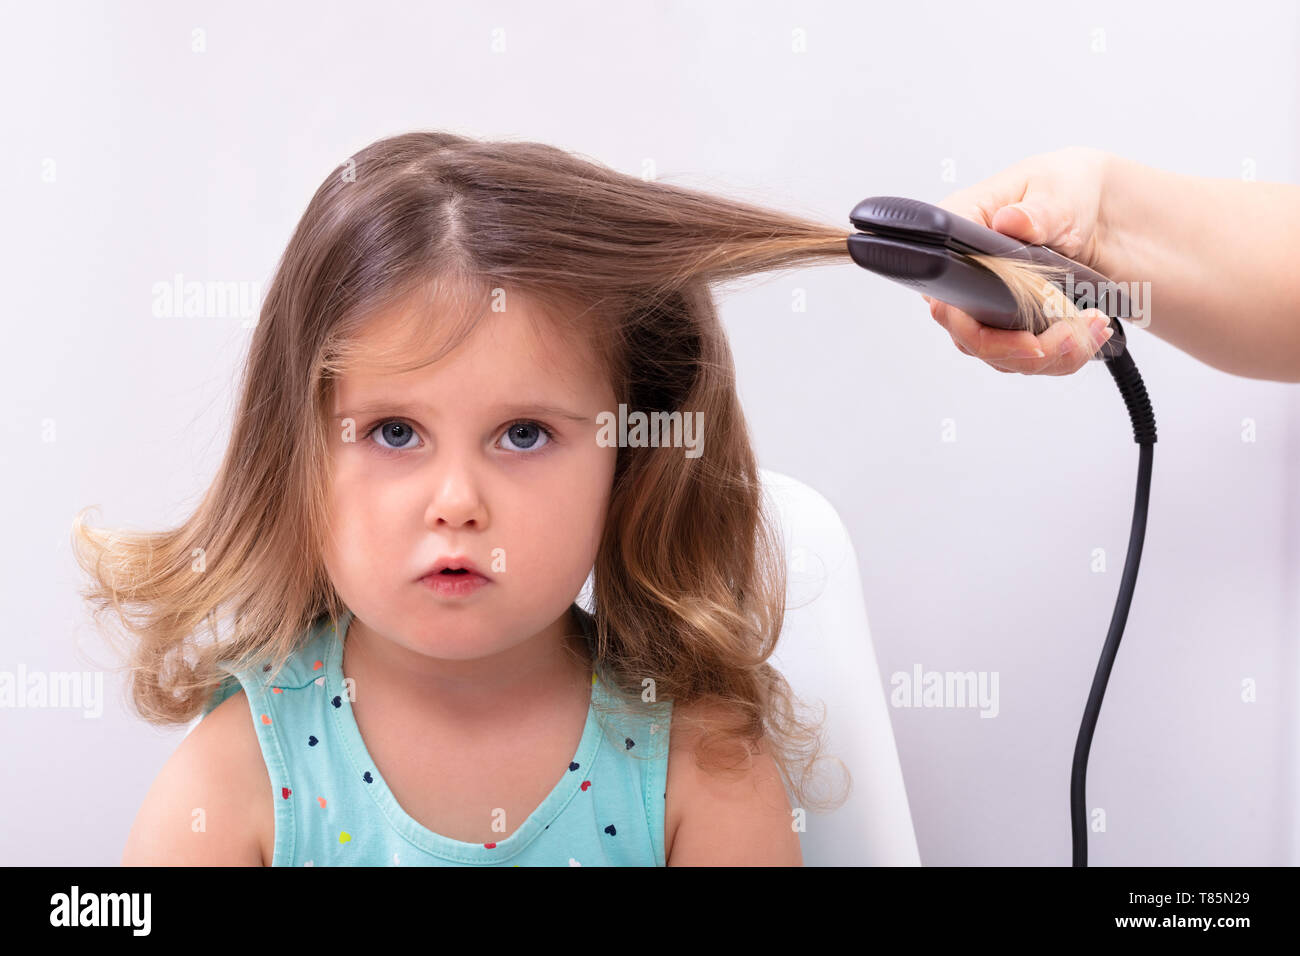 Mother Straightening Hair With Straightener To Her Daughter - Stock Image